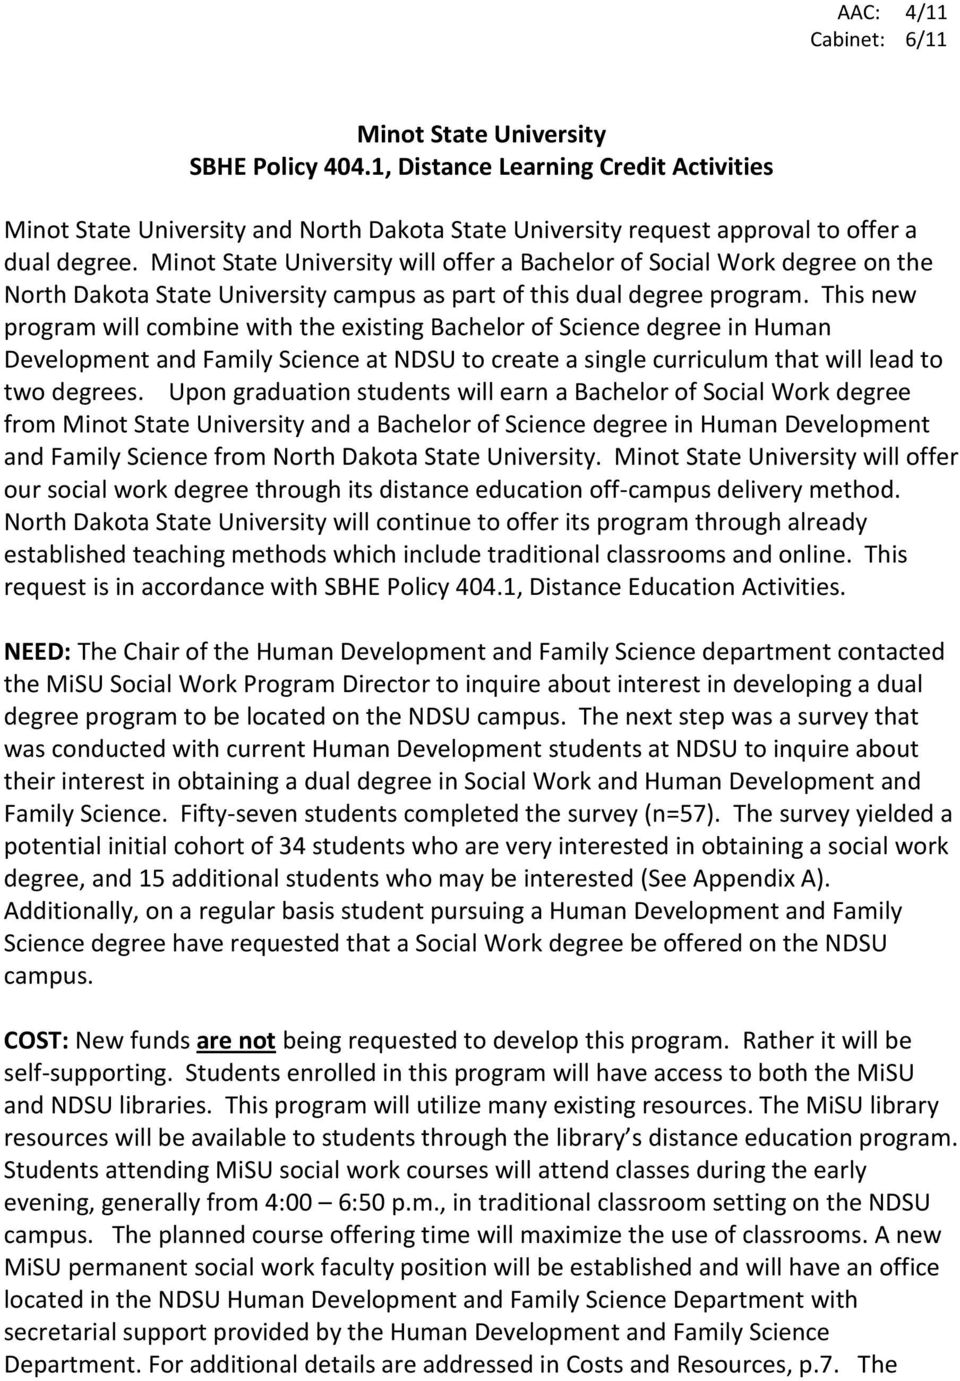 This new program will combine with the existing Bachelor of Science degree in Human Development and Family Science at NDSU to create a single curriculum that will lead to two degrees.